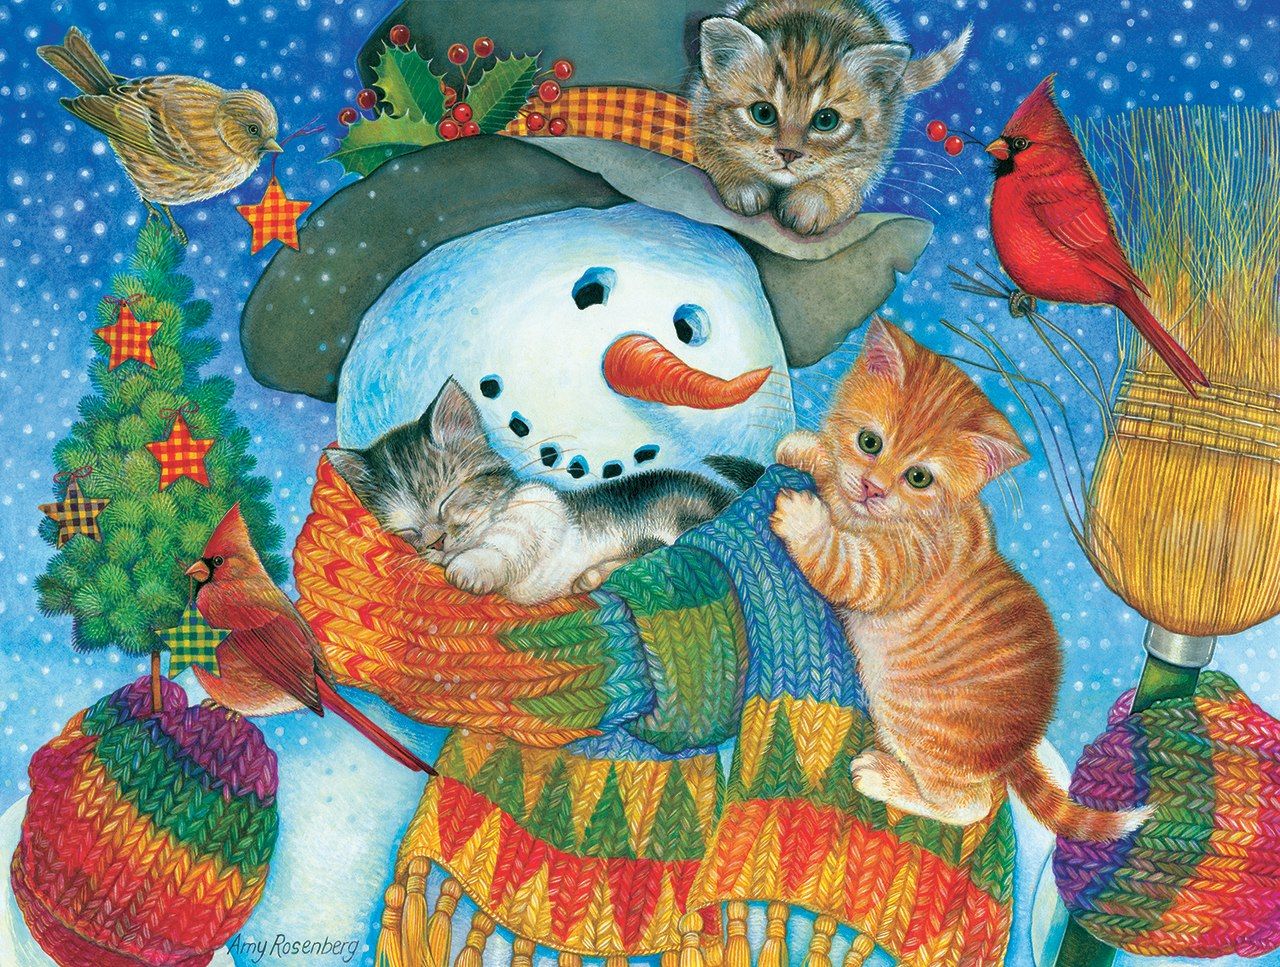 Snowman Cuddles - 500pc Jigsaw Puzzle by Sunsout  			  					NEW